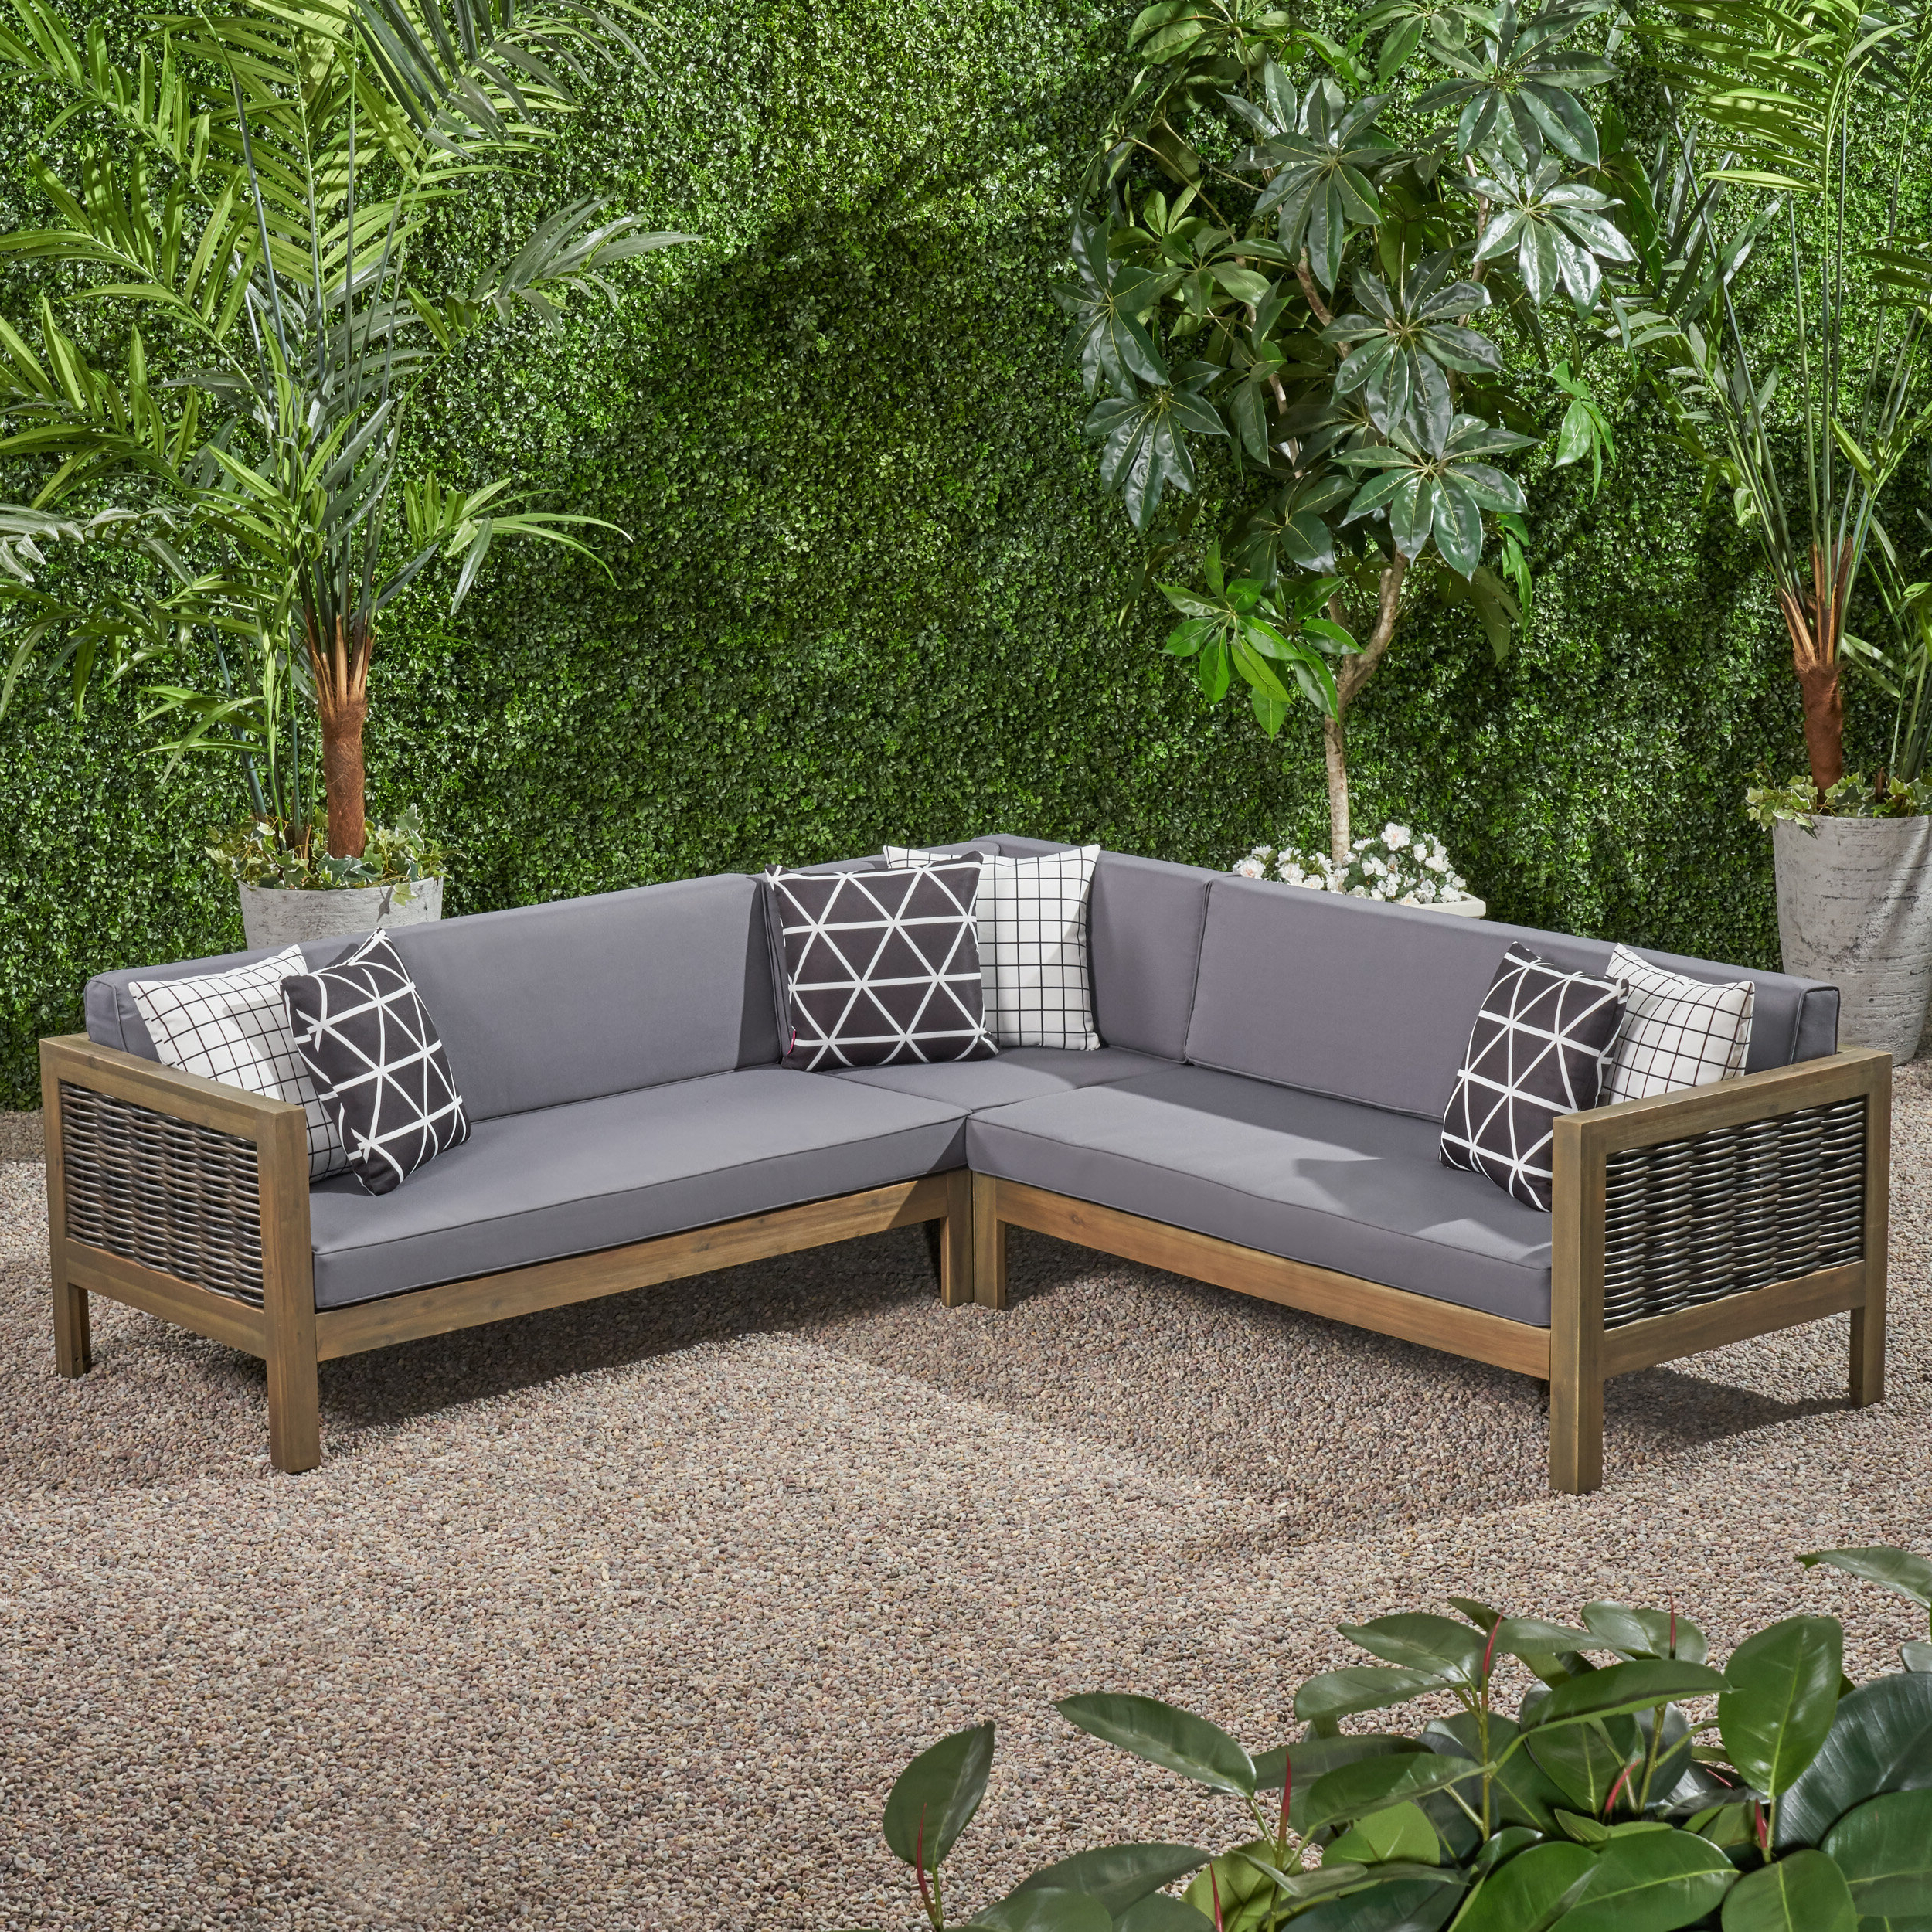 Hursey Patio Sectionals Inside Most Recent Kennison Patio Sectional With Cushions (View 7 of 20)